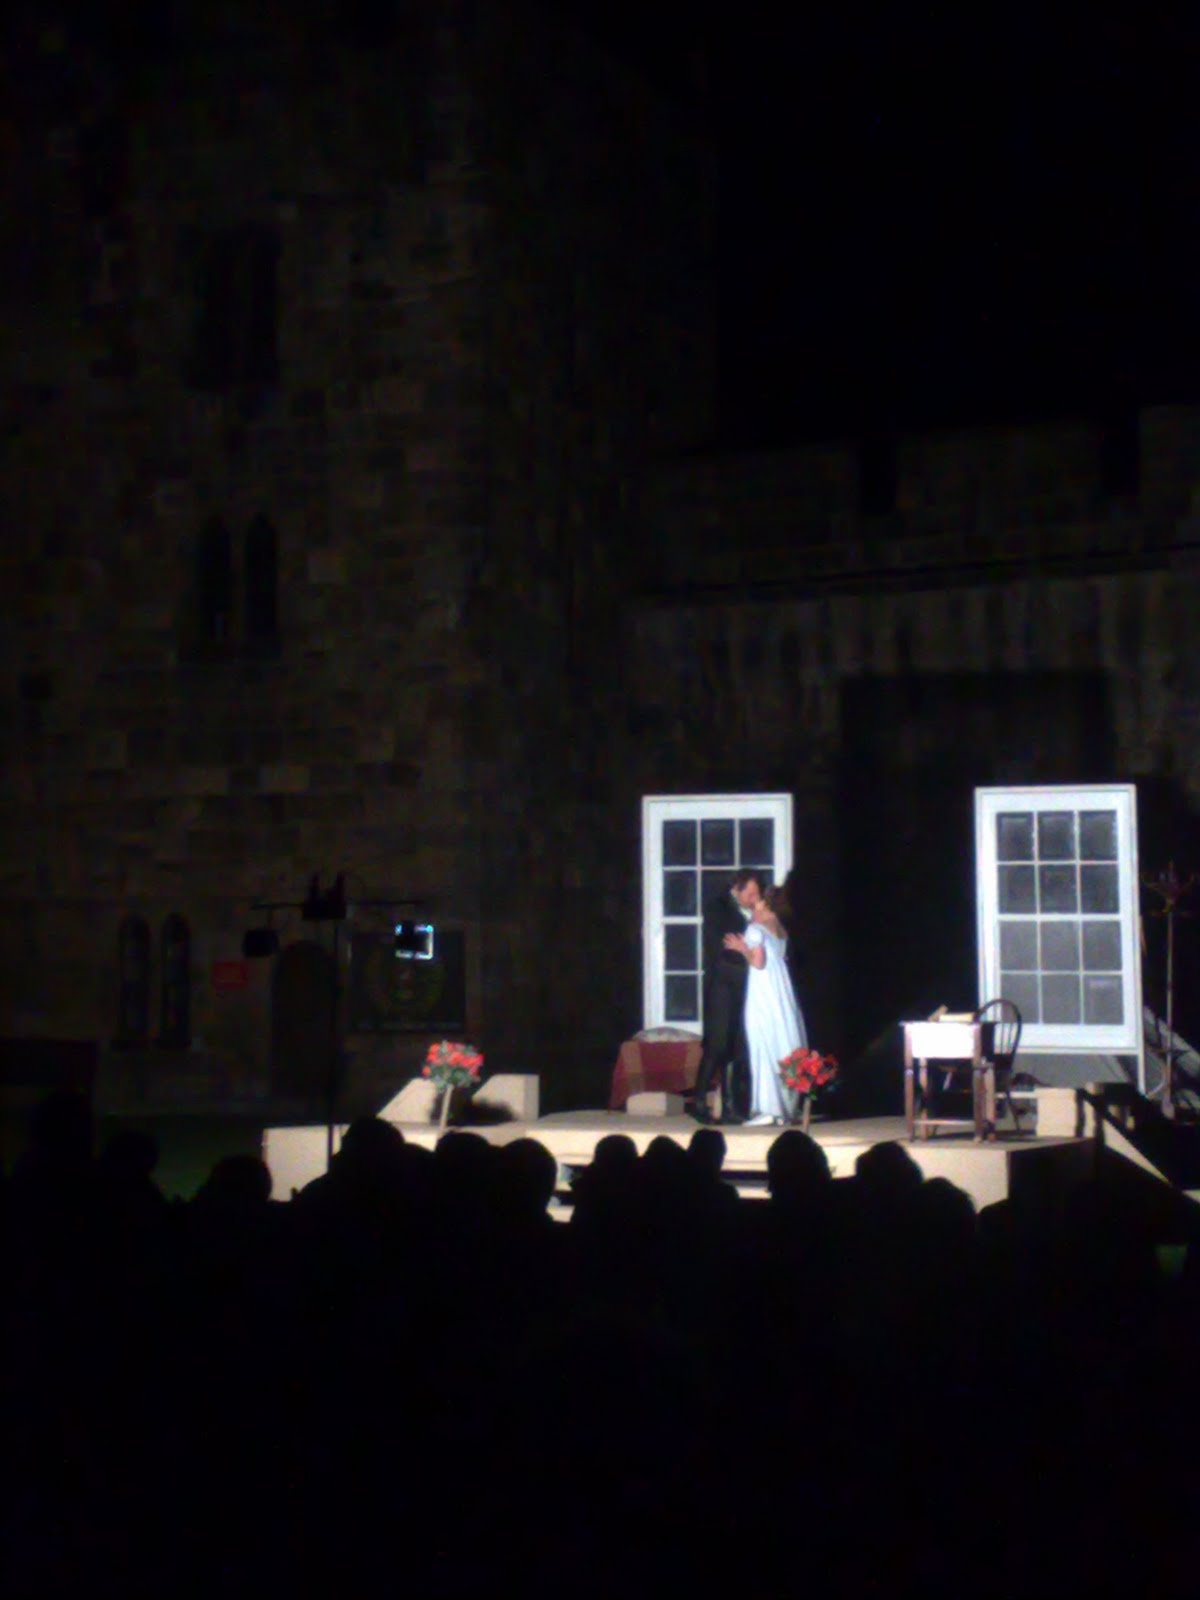 Backyard Theater Ensemble : With an outdoor event at such a stately venue, you are expected to be